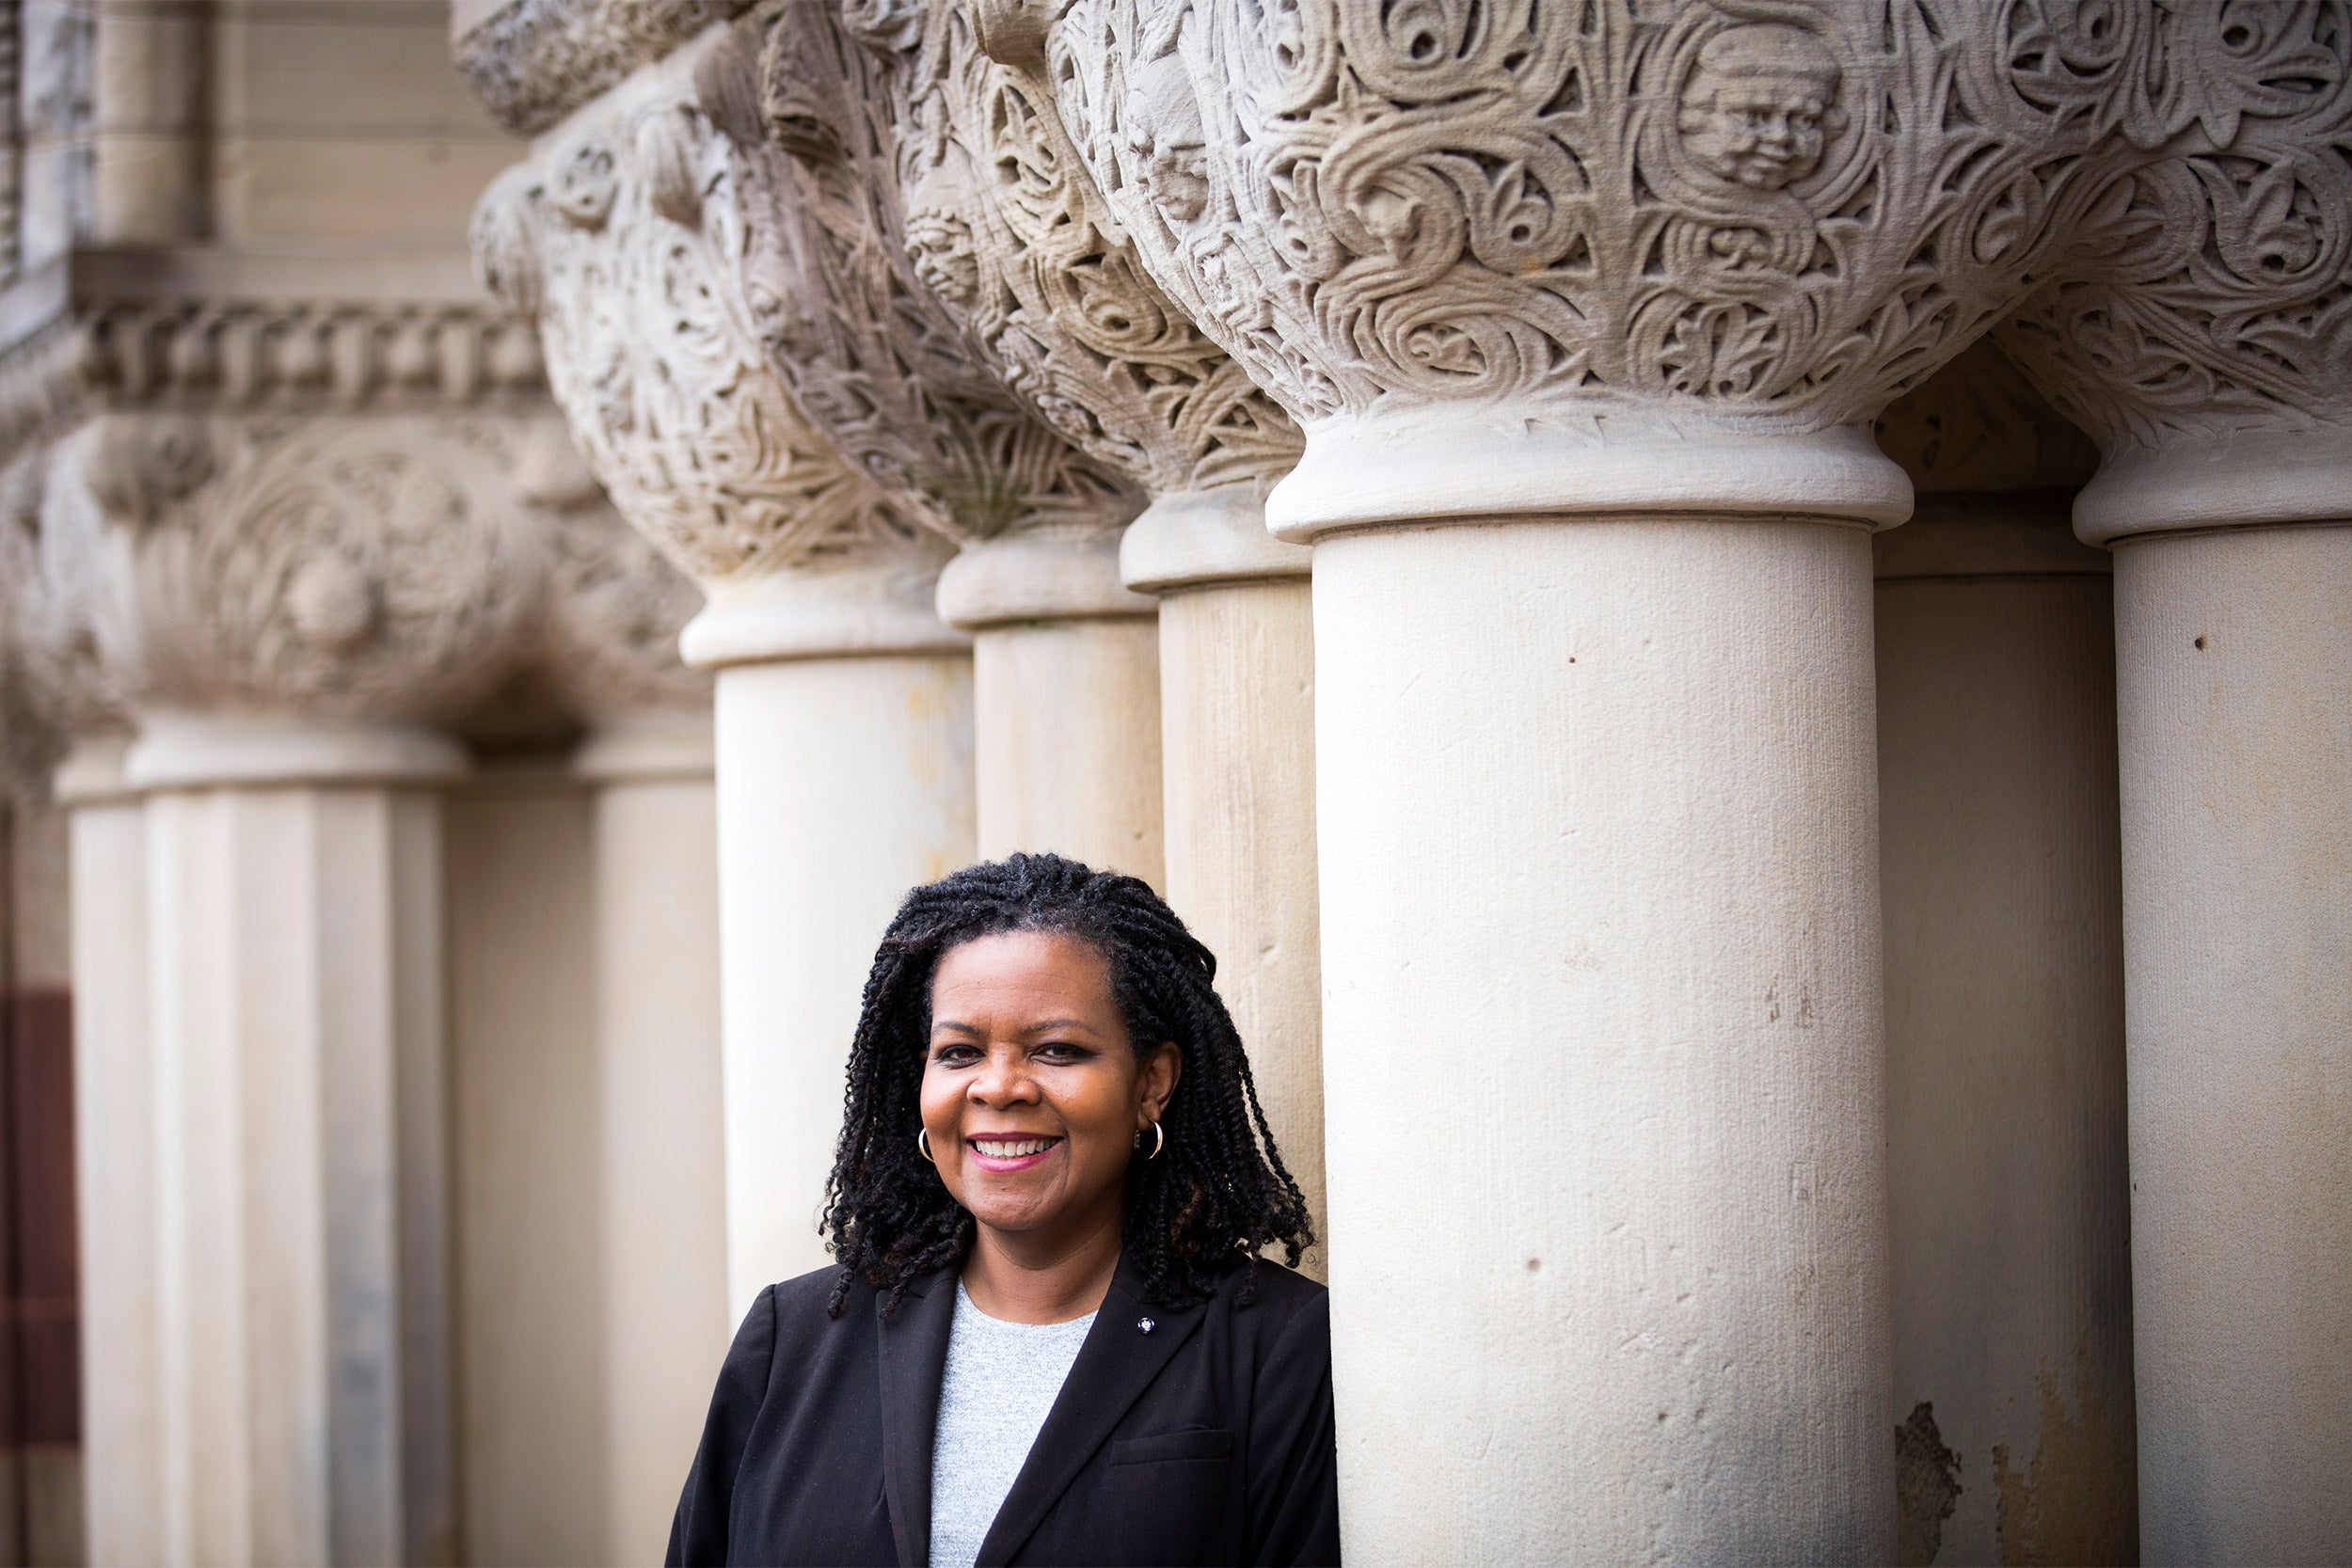 Annette Gordon-Reed standing by columns.